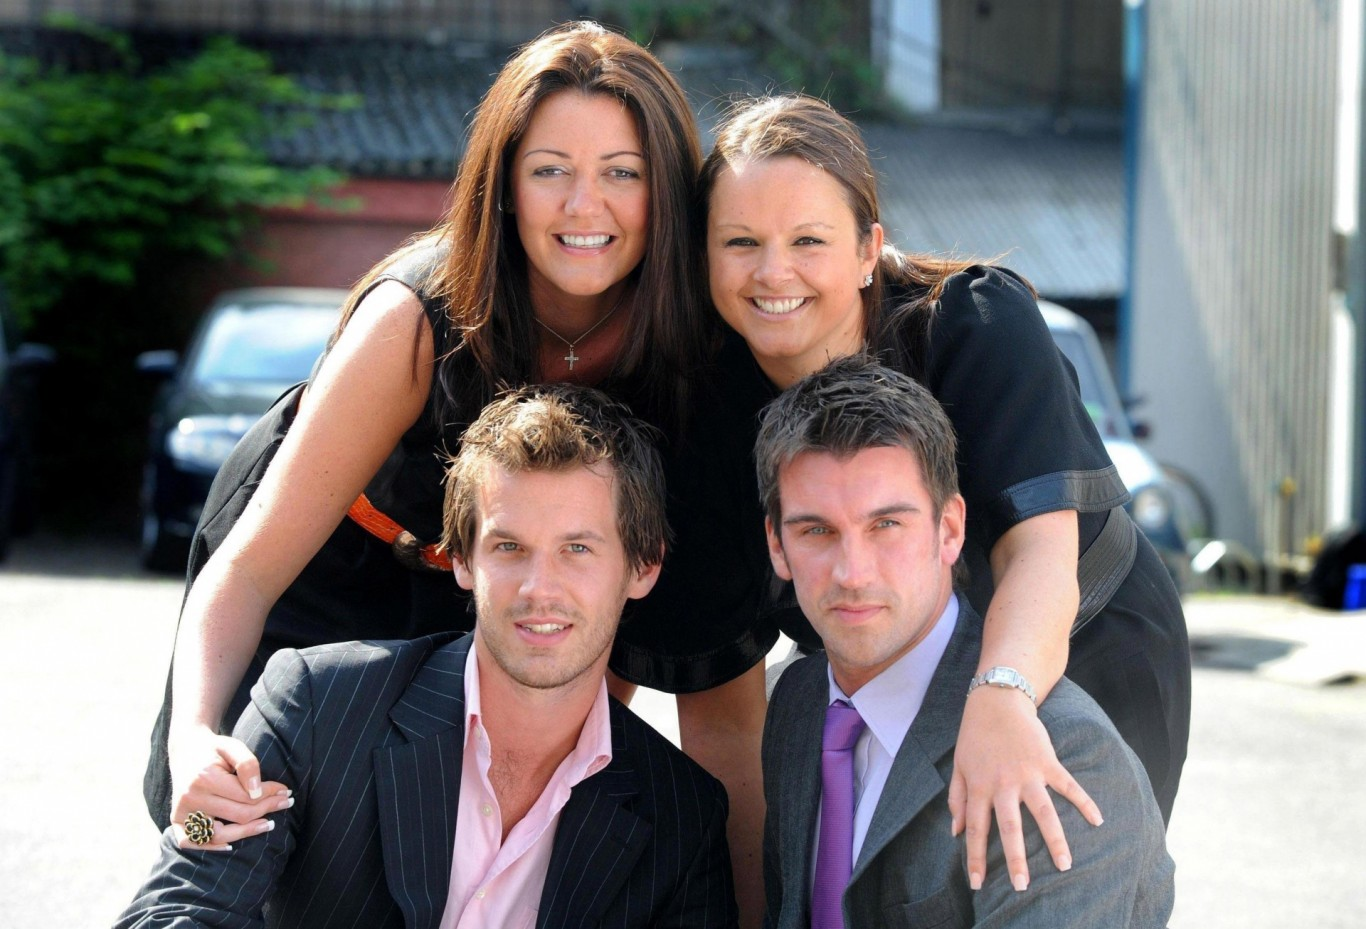 Lee McQueen (bottom right) with finalists Helene Speight, Claire Young and Alex Wotherspoon from Series 4 of The Apprentice